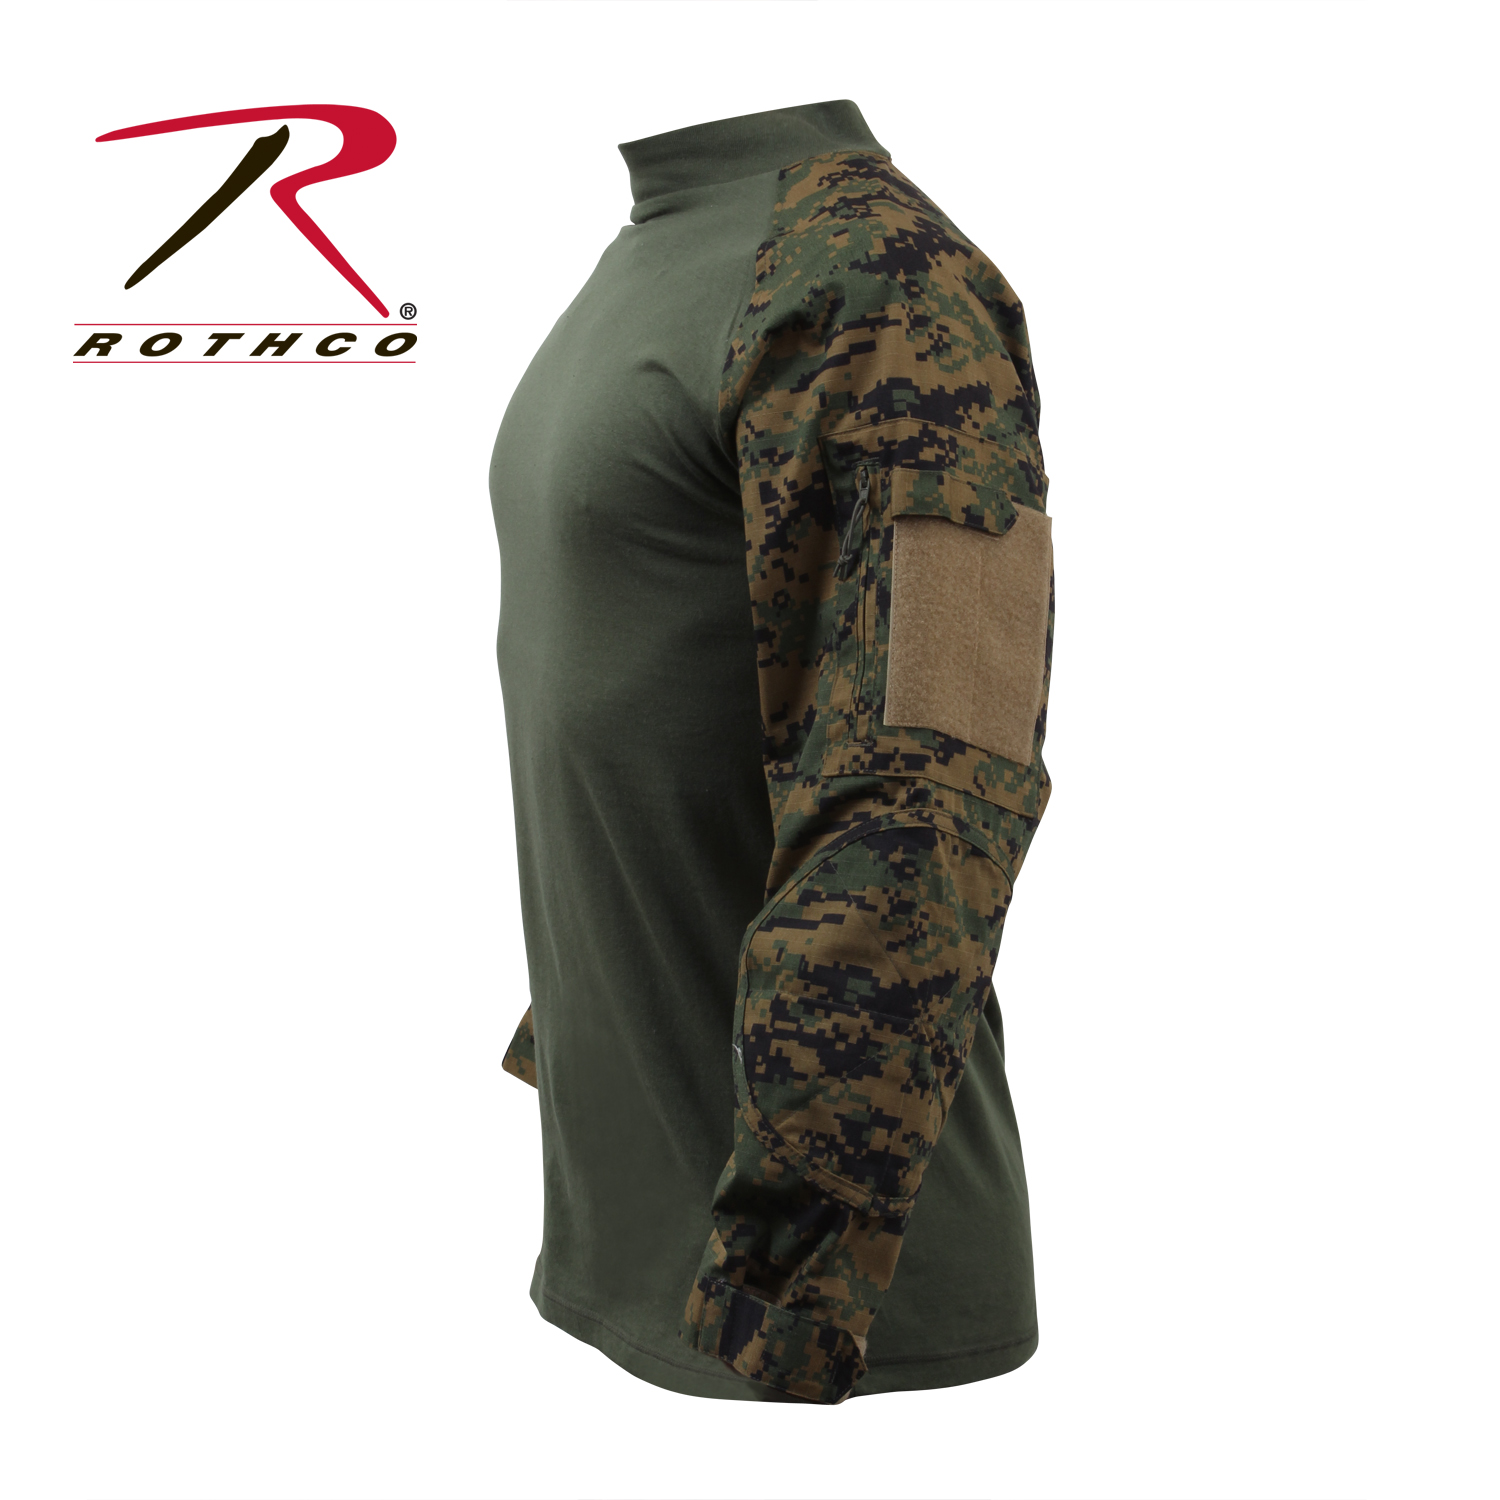 ROTHCO MILITARY COMBAT SHIRT – MARINE DIGITAL